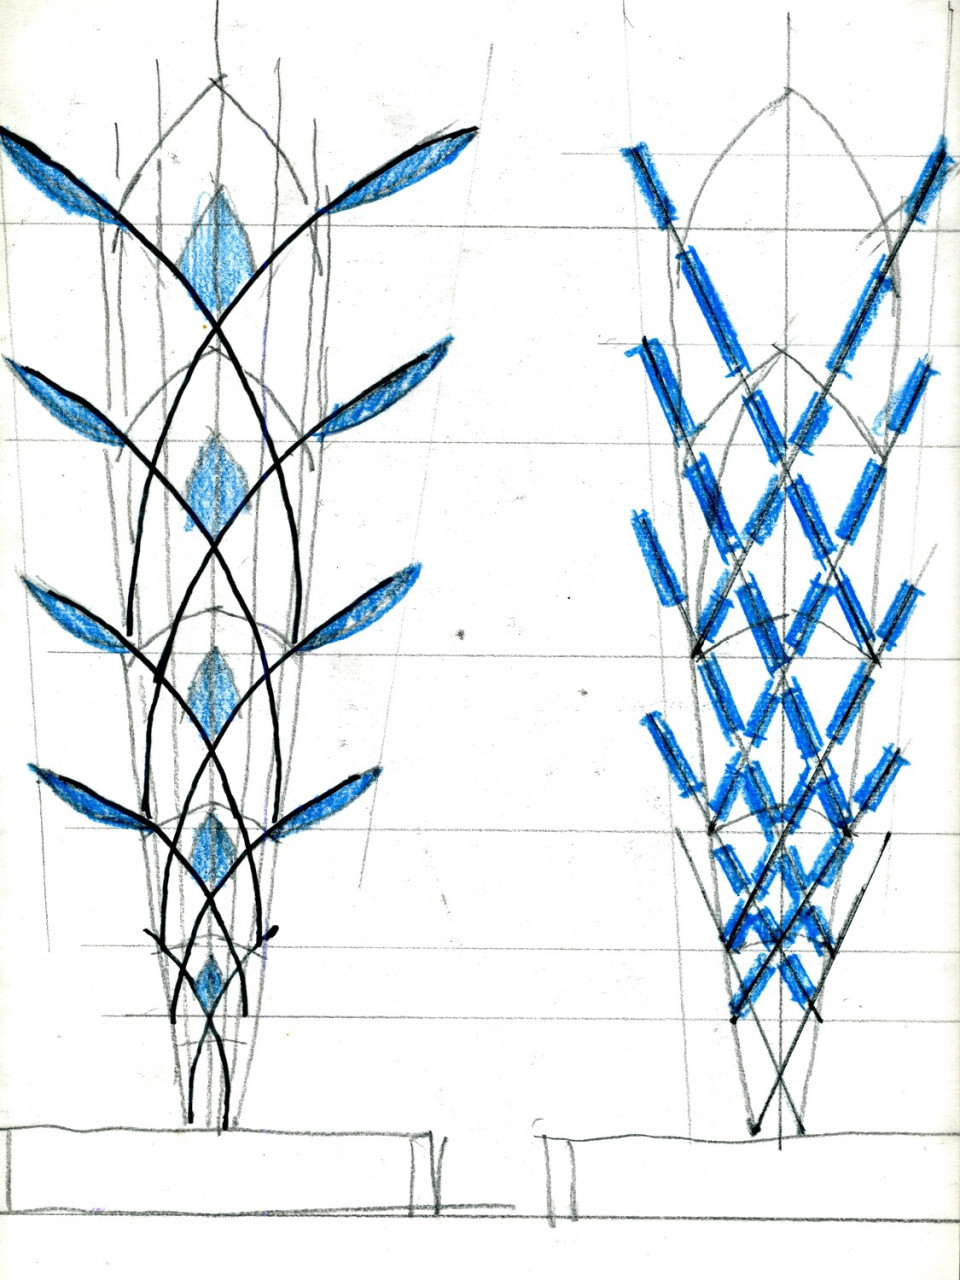 Ed Carpenter's initial sketches of Mesaflora light rail sculpture. The blossoming of the City of Mesa itself is implicit in this metaphor. / image 9